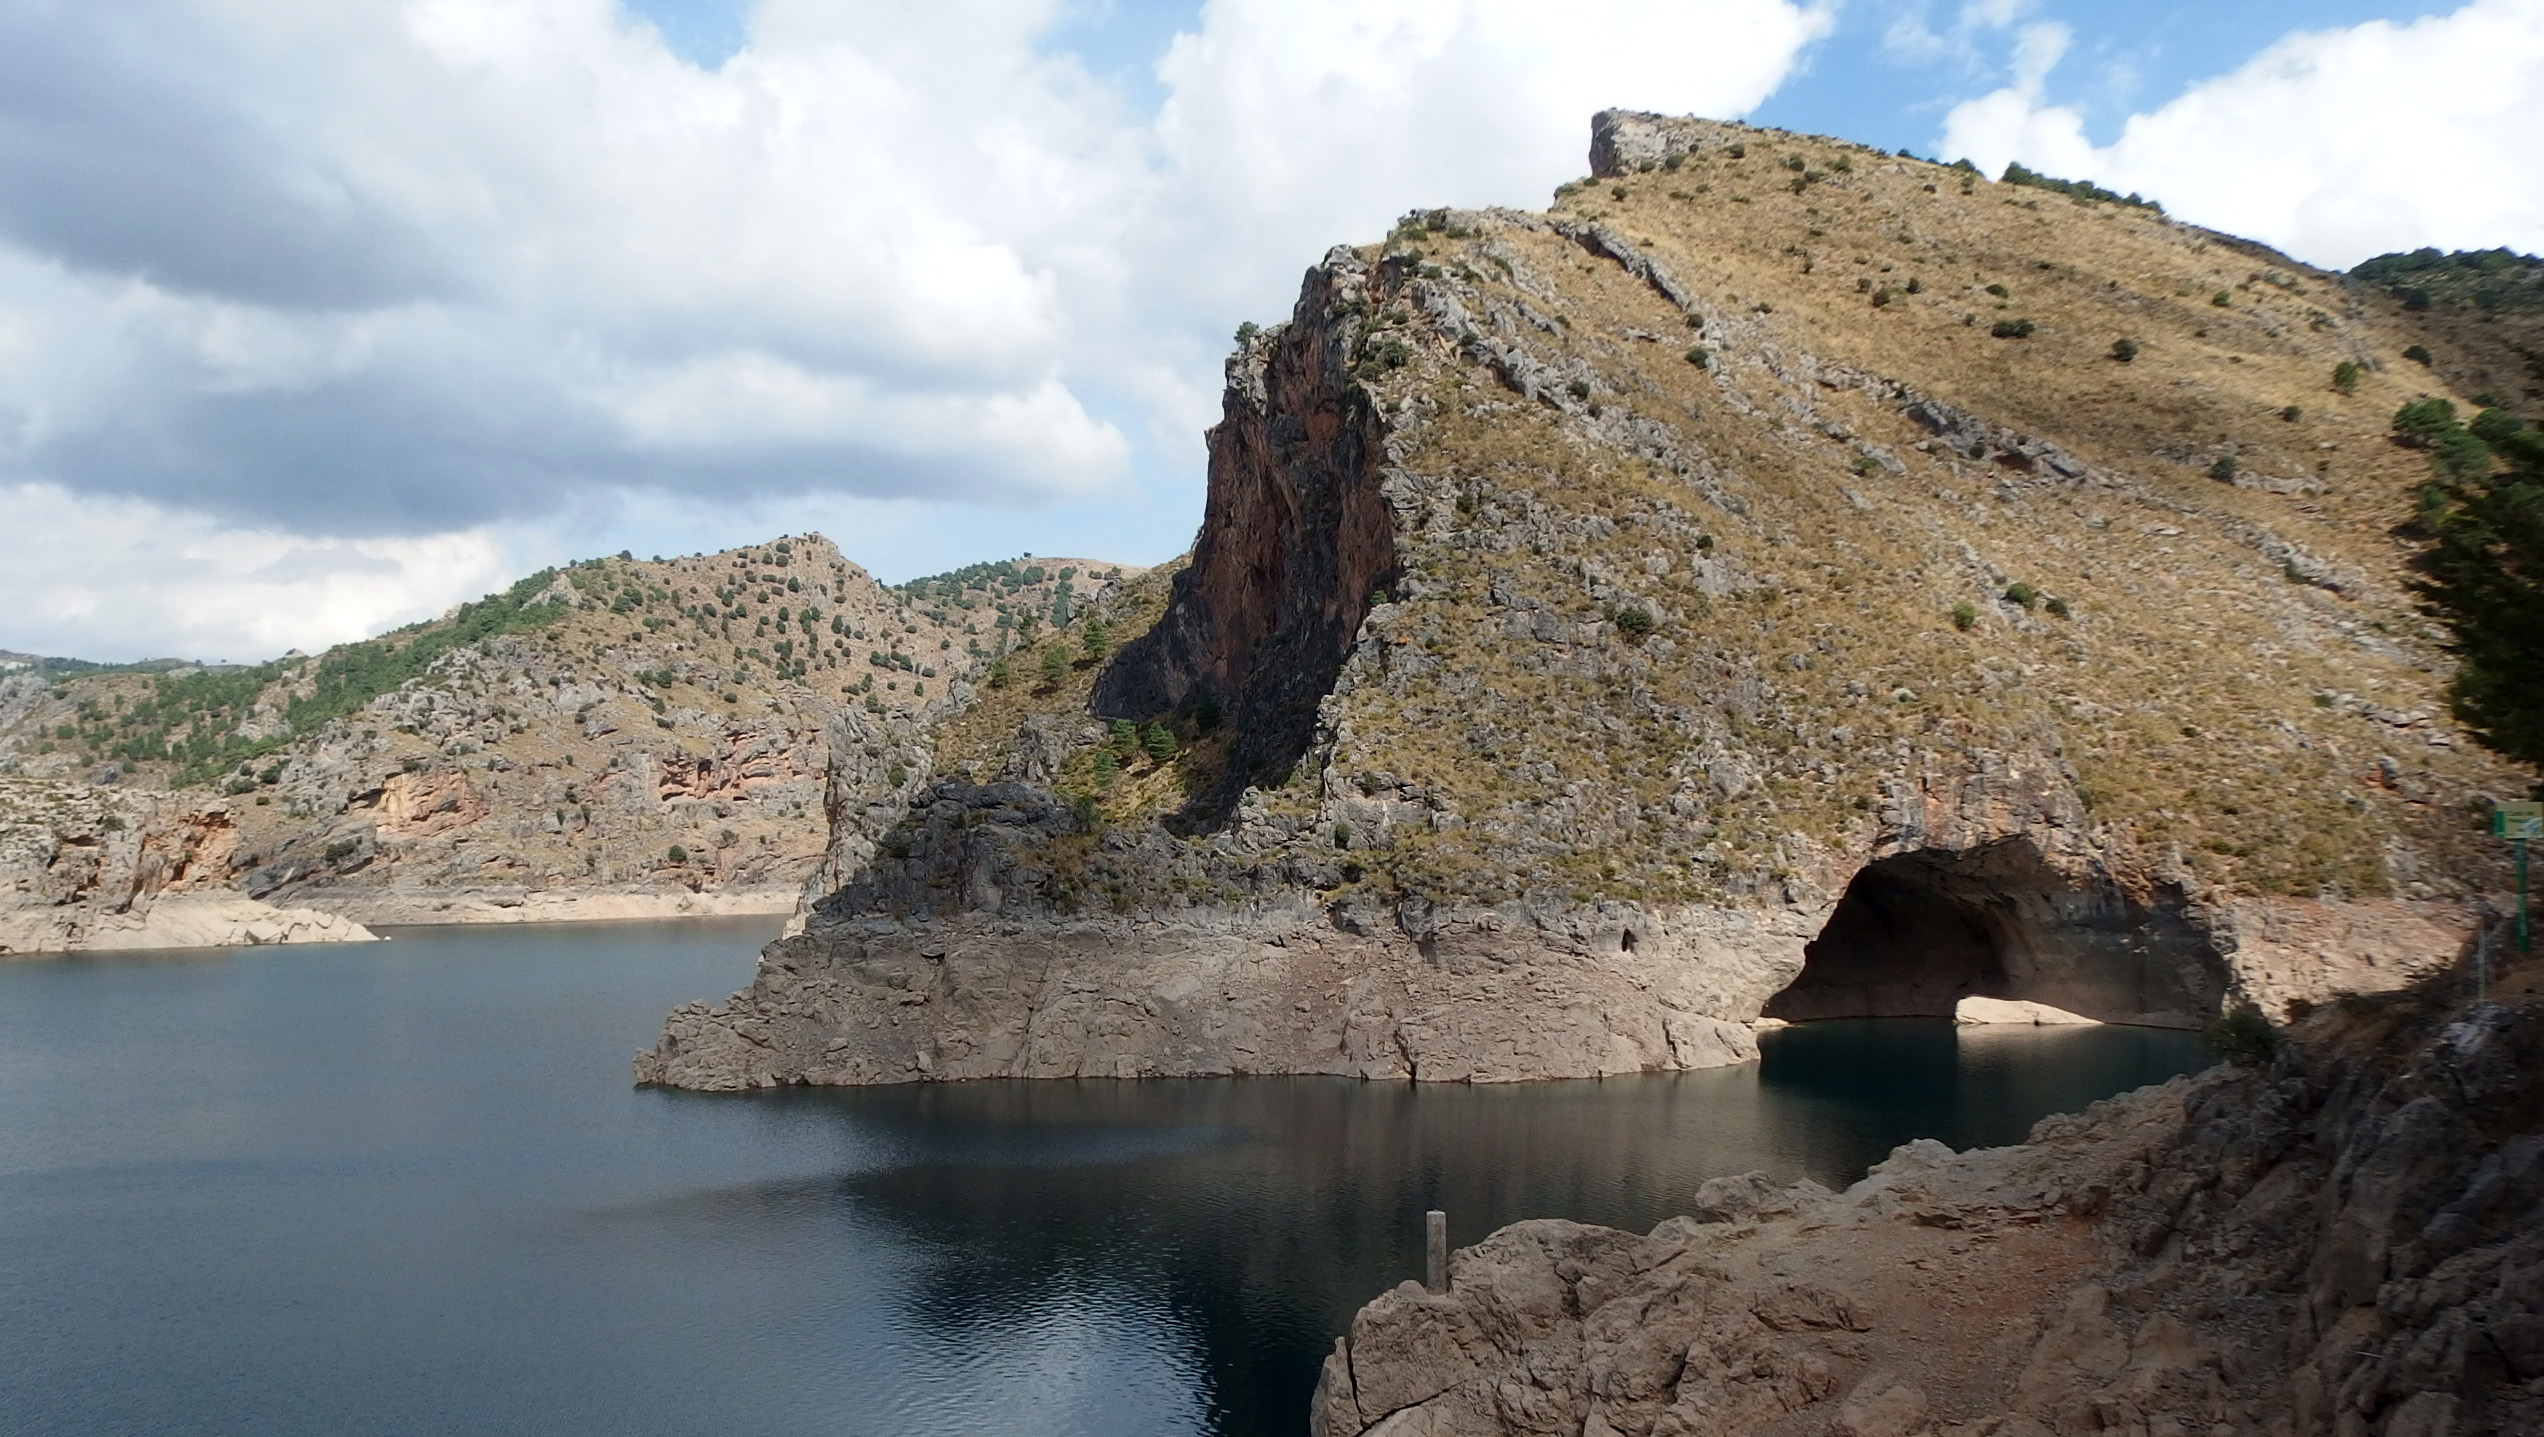 Quéntar Lake – nice peaceful place close to Granada